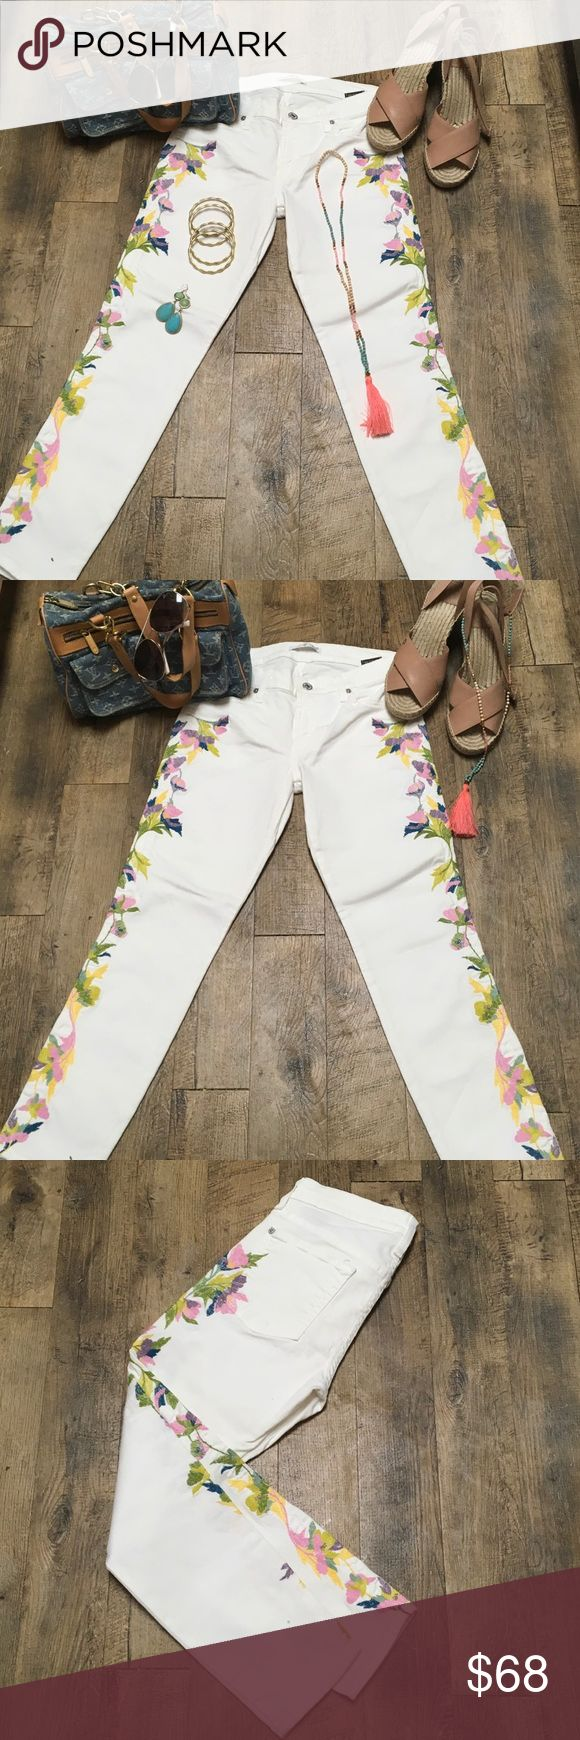 "SEVEN 4 all MANKIND White JEANS detail🌺🌸🌼💐27 SEVEN for all MANKIND spandex cotton stretch white trending Floral Embroidered jeans. 🌸🌺💐💐🌸🌺🍃Straight LEG....Size 27... 8"" rise from waistband to crotch.....27"" inseam....PINK, PURPLE, YELLOW, GREEN, BLUE SAGE, CHARTREUSE....FUN💐💐 Seven for all mankind Jeans Skinny"